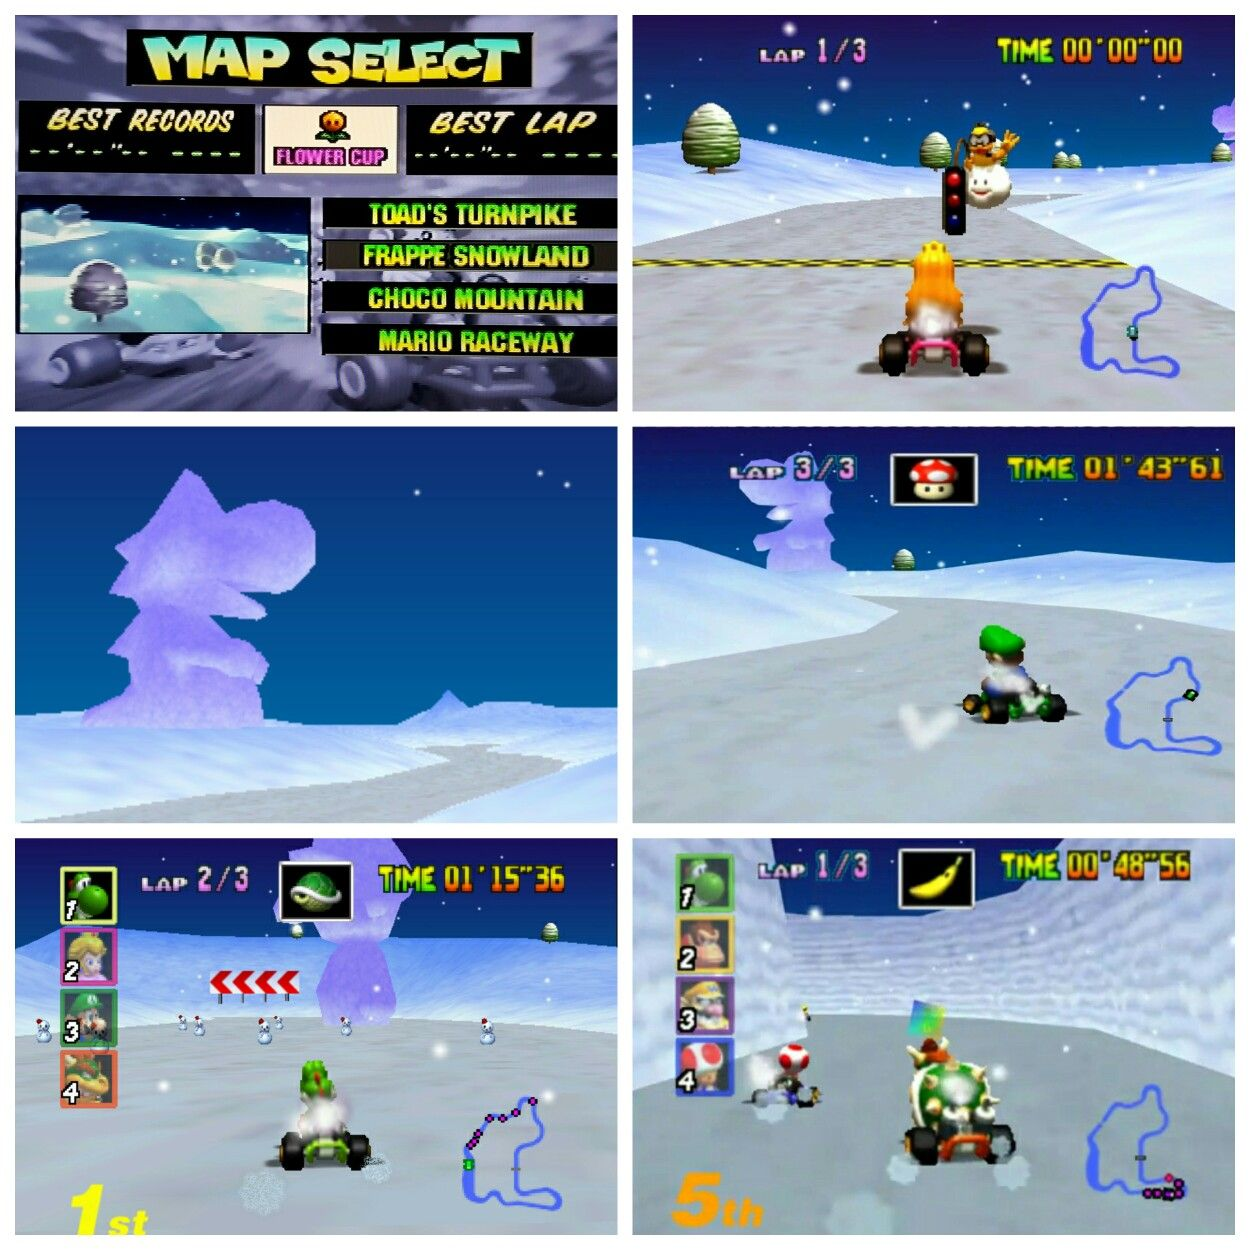 Mario Kart 64 Courses Frappe Snowland Screenshots